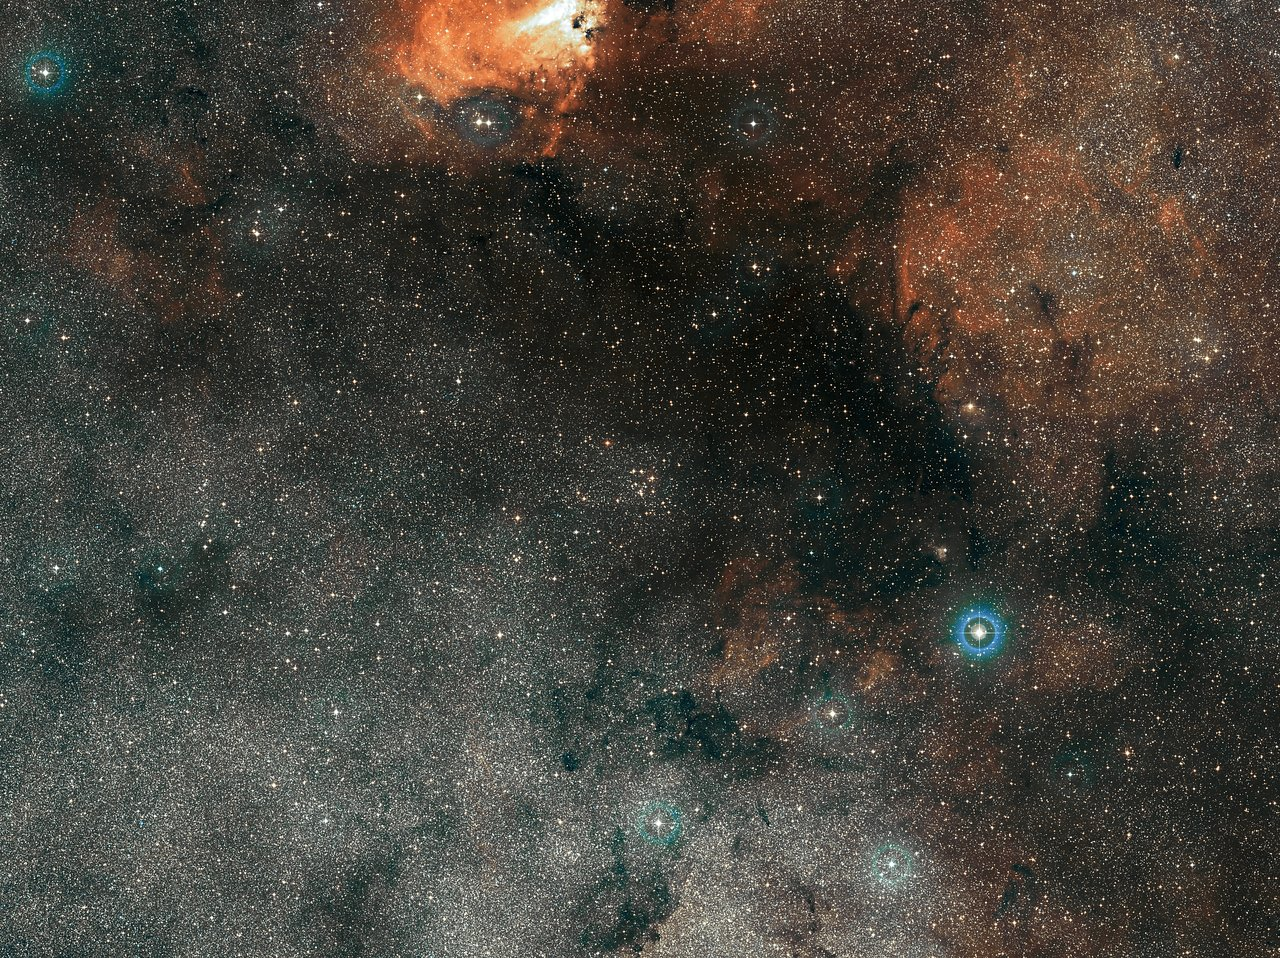 The small smattering of bright stars at the centre of this wide-field view is Messier 18, an open star cluster containing stars that formed together from the same massive cloud of gas and dust. This picture, which also shows part of the bright Omega Nebula (Messier 17) at the top, was created from images forming part of the Digitized Sky Survey 2. - Image Credit:ESO/Digitized Sky Survey 2.   Acknowledgement: Davide De Martin